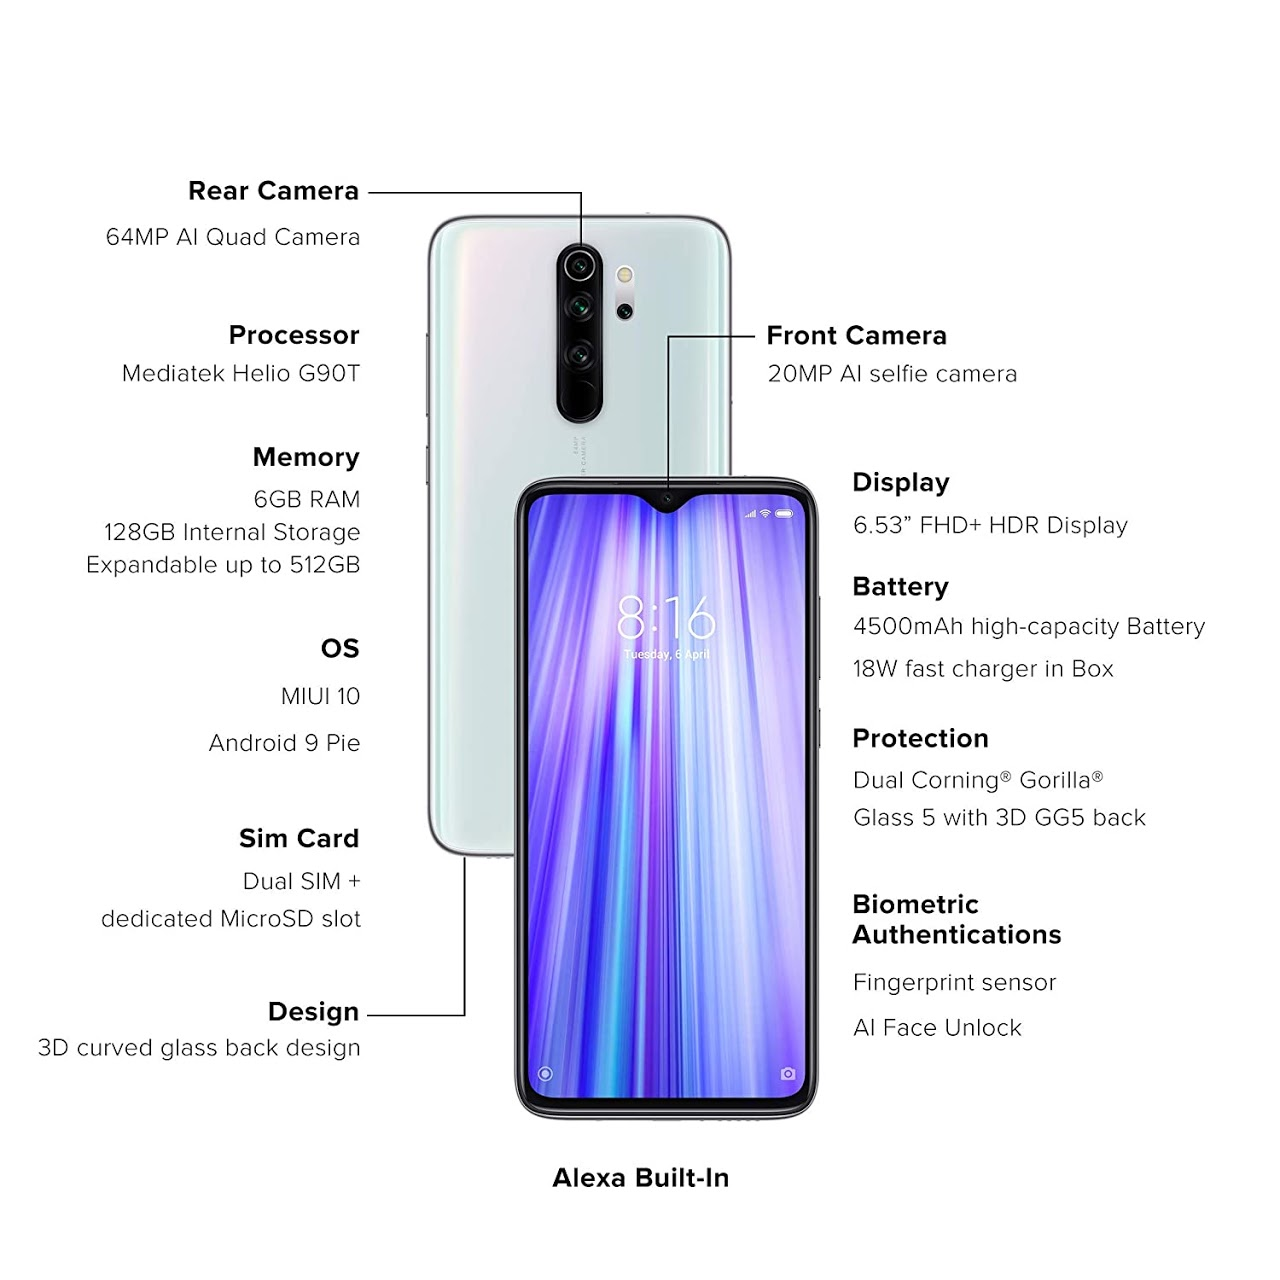 Redmi Note 8 Pro Price In India - Xiaomi Redmi Note 8 Pro Review and Buy From Amazon - Camera, Battery, RAM, Storage, Processor, Display, Battery, Price